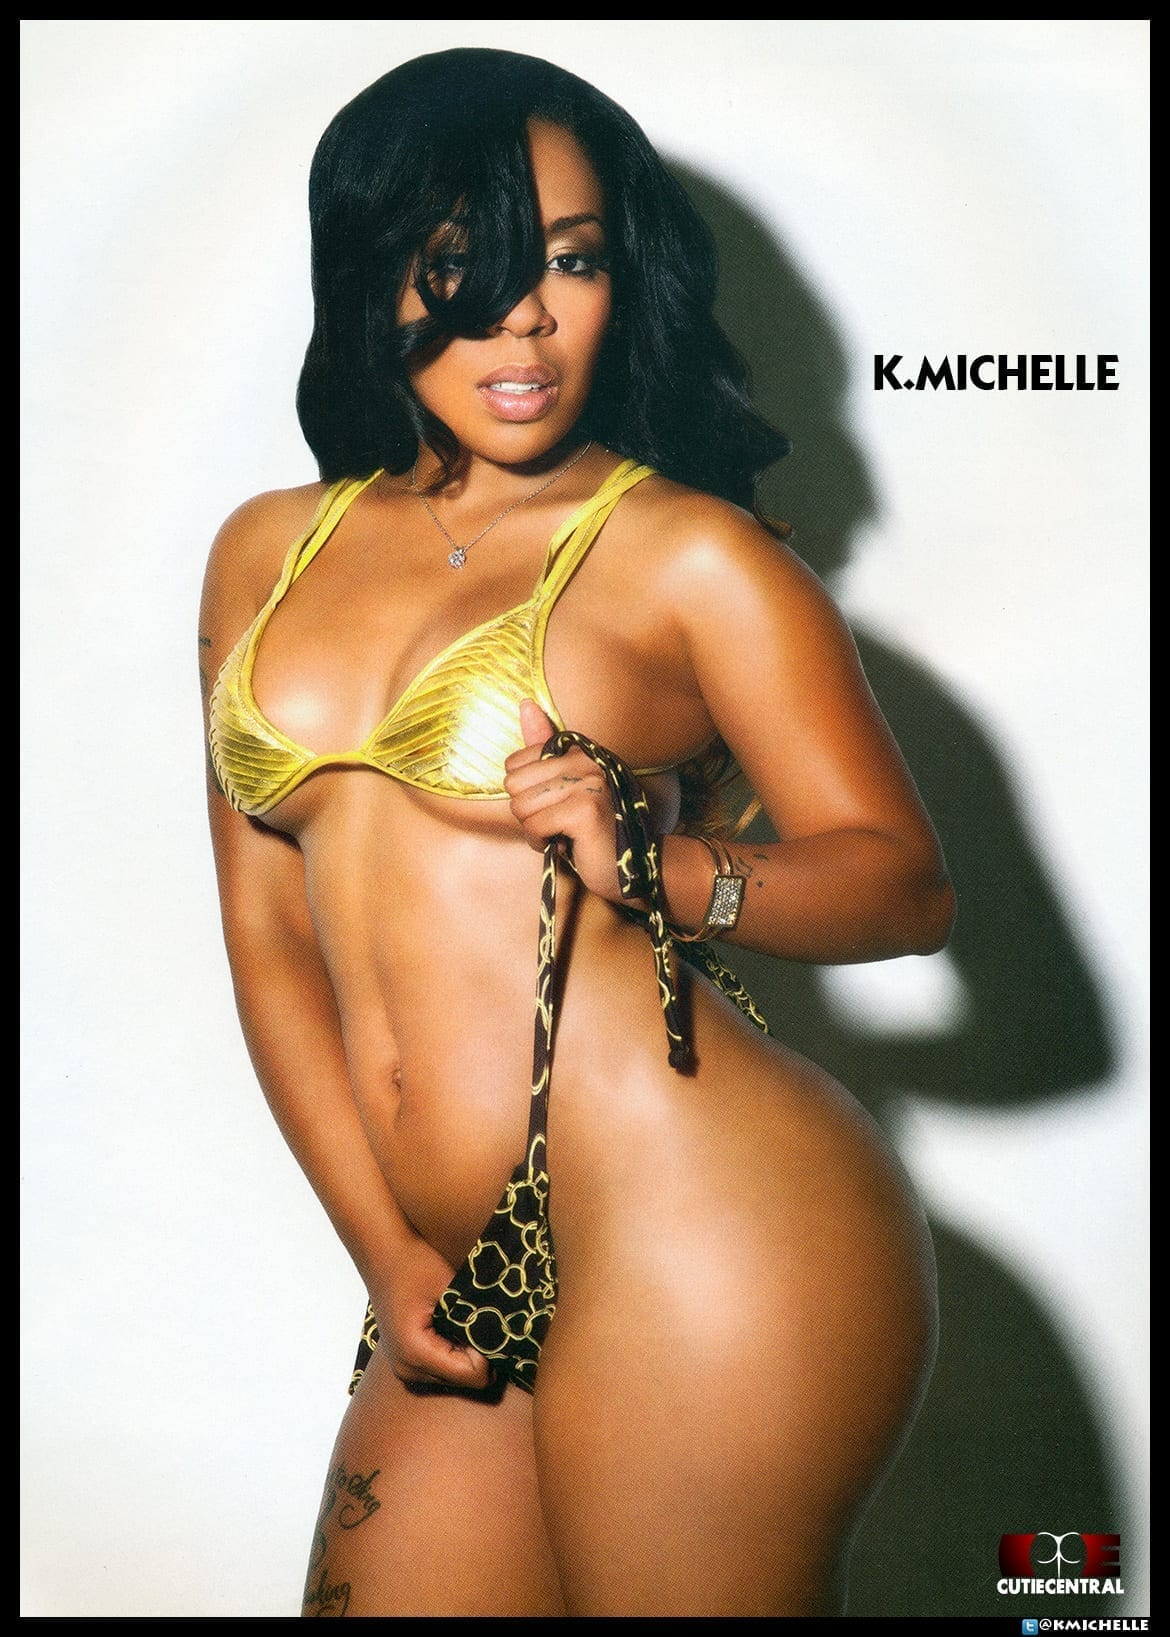 K michelle king magazine